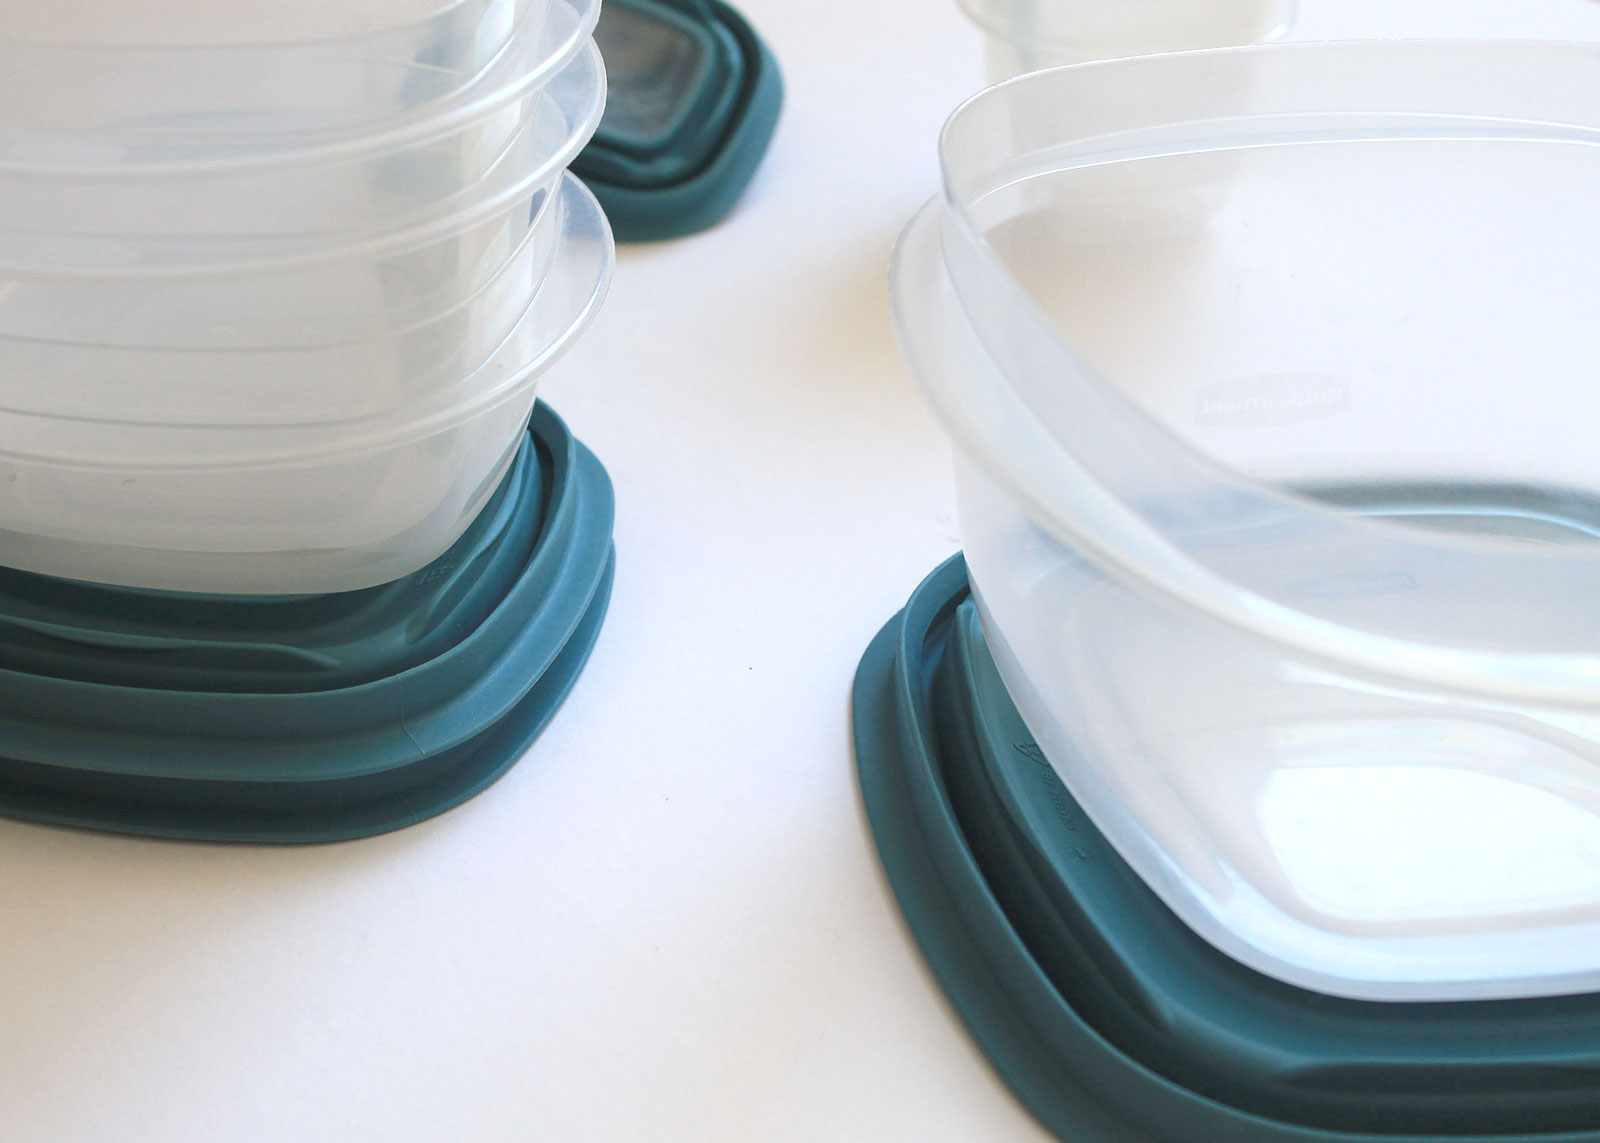 10 ways to repurpose plastic containers